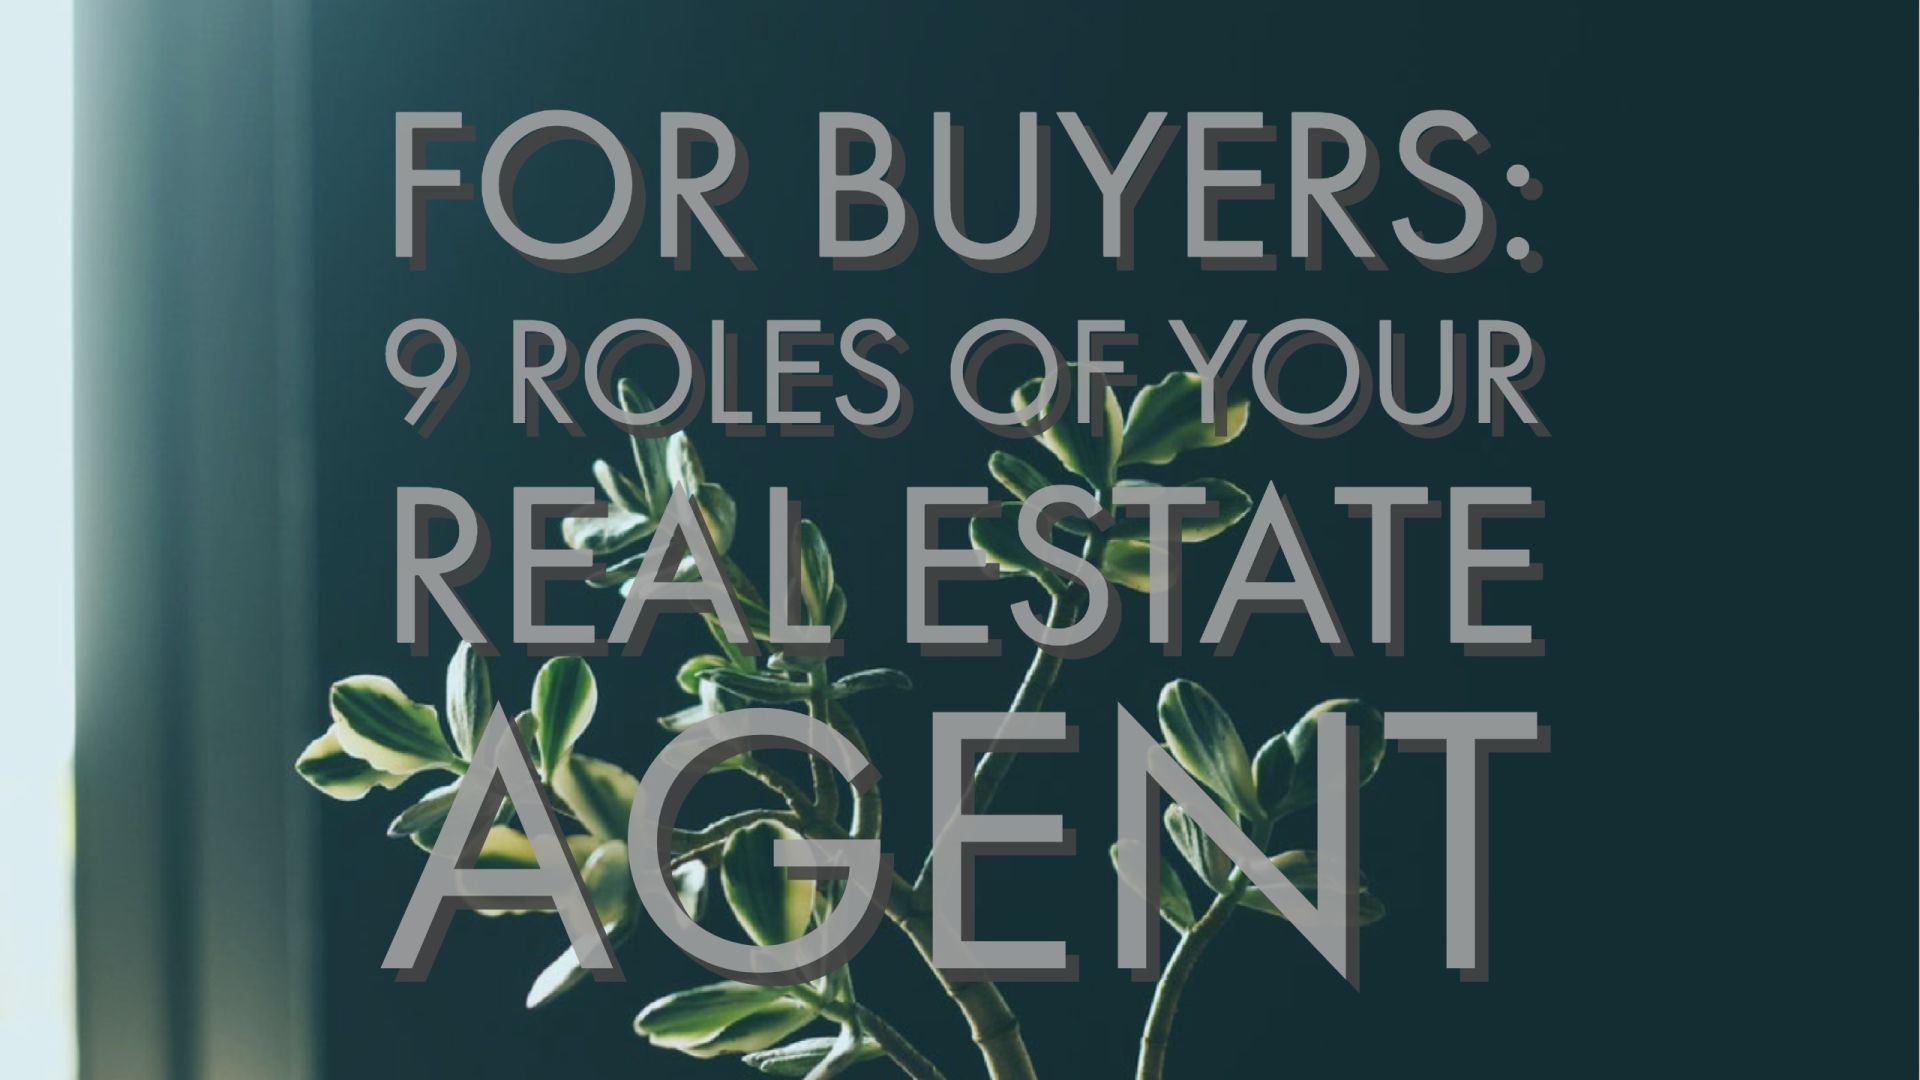 For Buyers: Nine main roles of your real estate agent